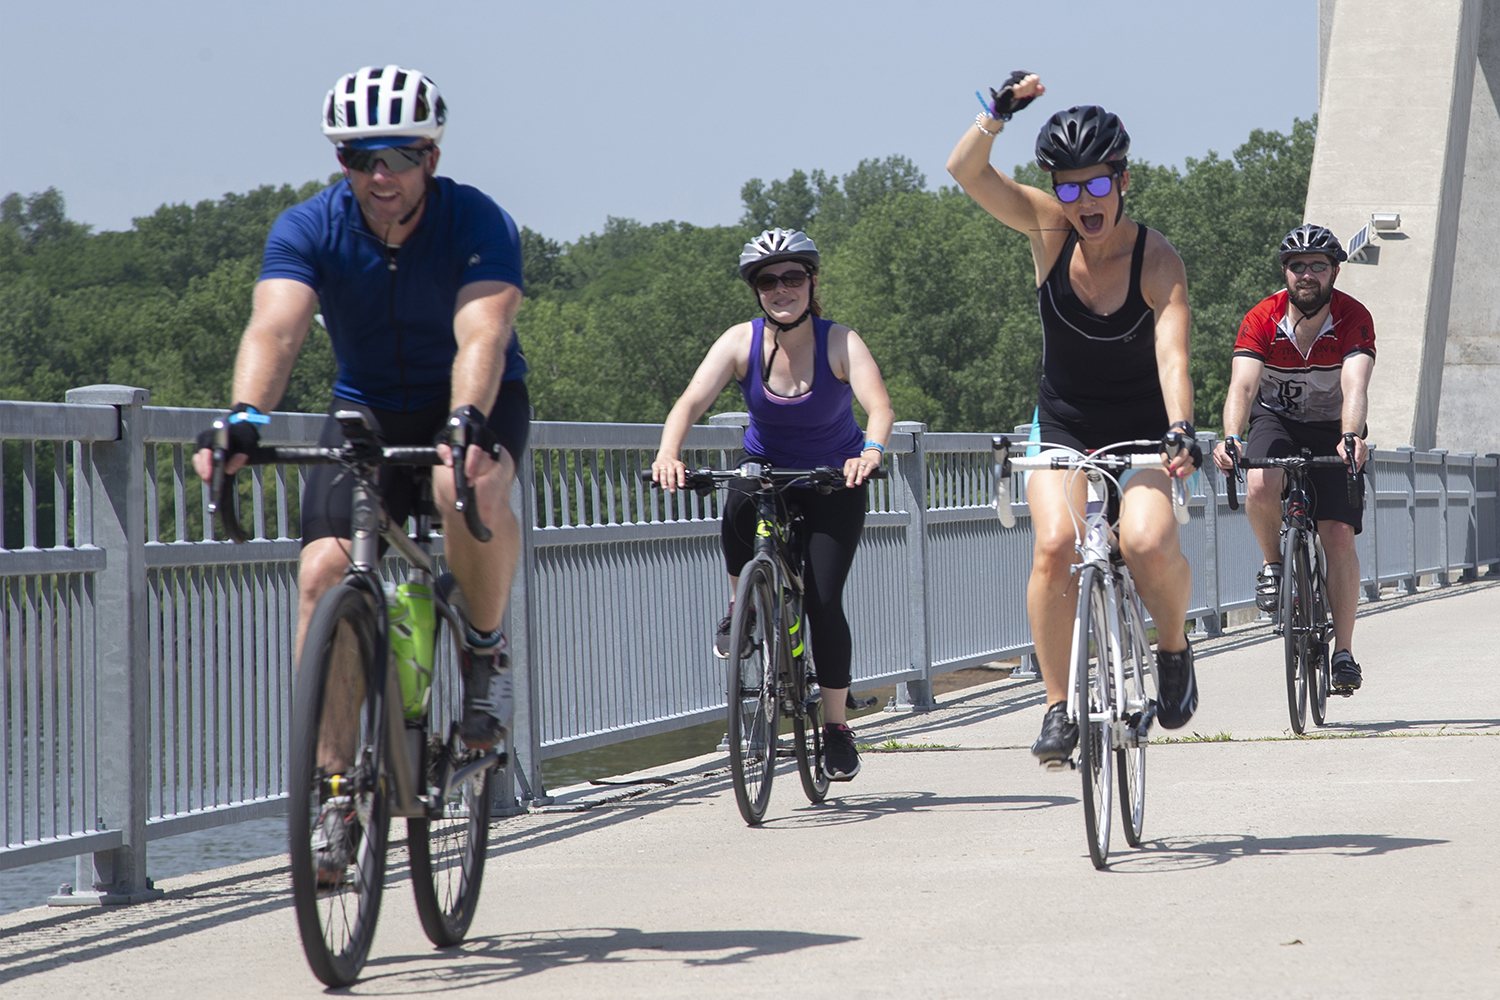 Cyclists ride during the Big Rove bicycle event on Saturday, June 29, 2019. The route, which is part of the RAGBRAI training series, was 36 miles long starting in Iowa City with stops in North Liberty and Solon.